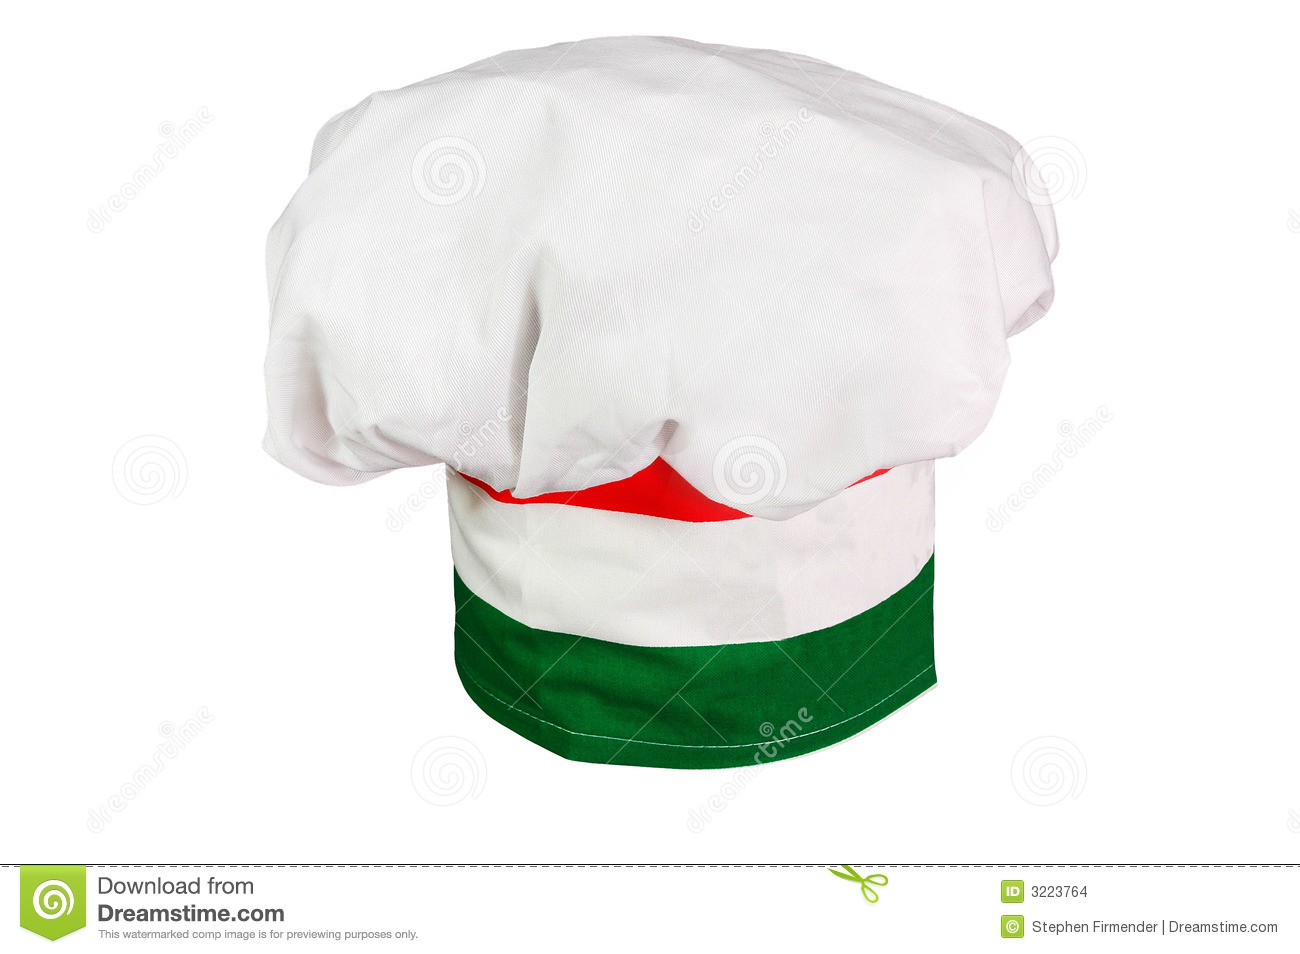 Italian Chef's Hat Stock Images - Image: 3223764